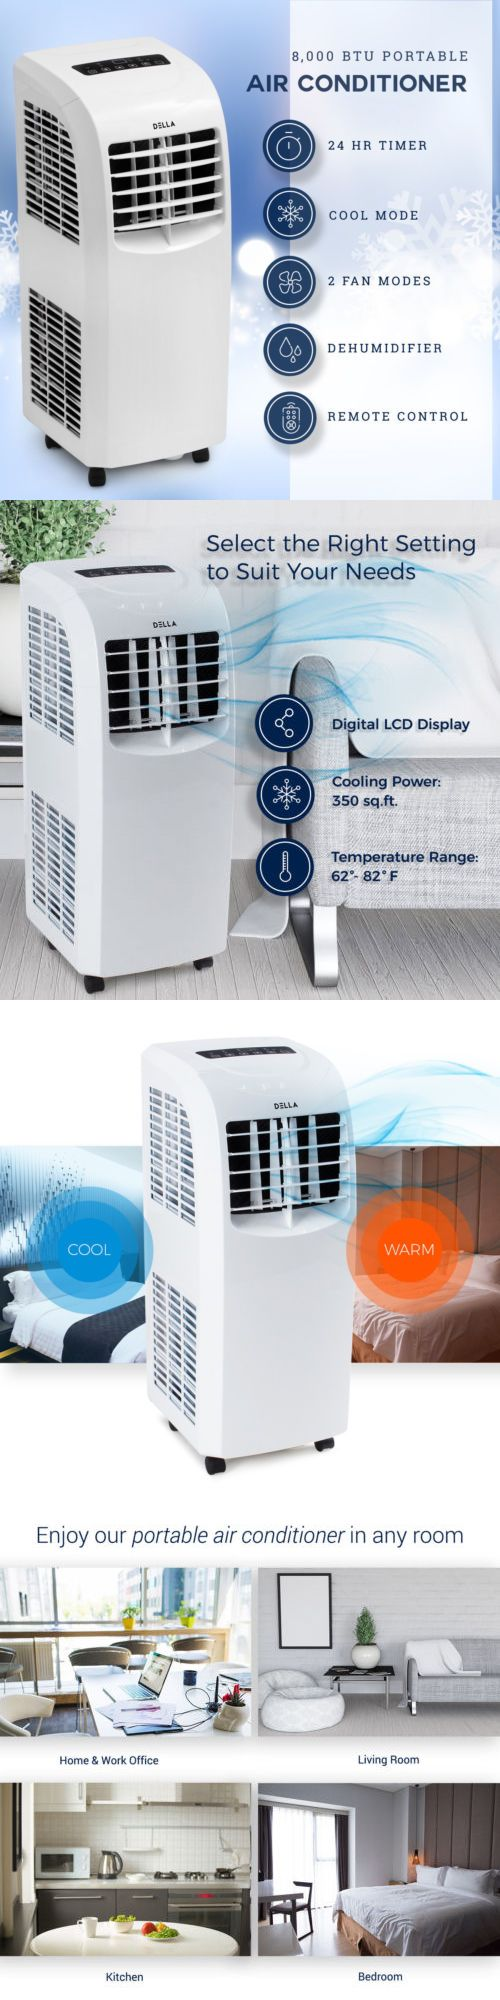 Air Conditioners and Heaters 185107 8,000 Btu Portable